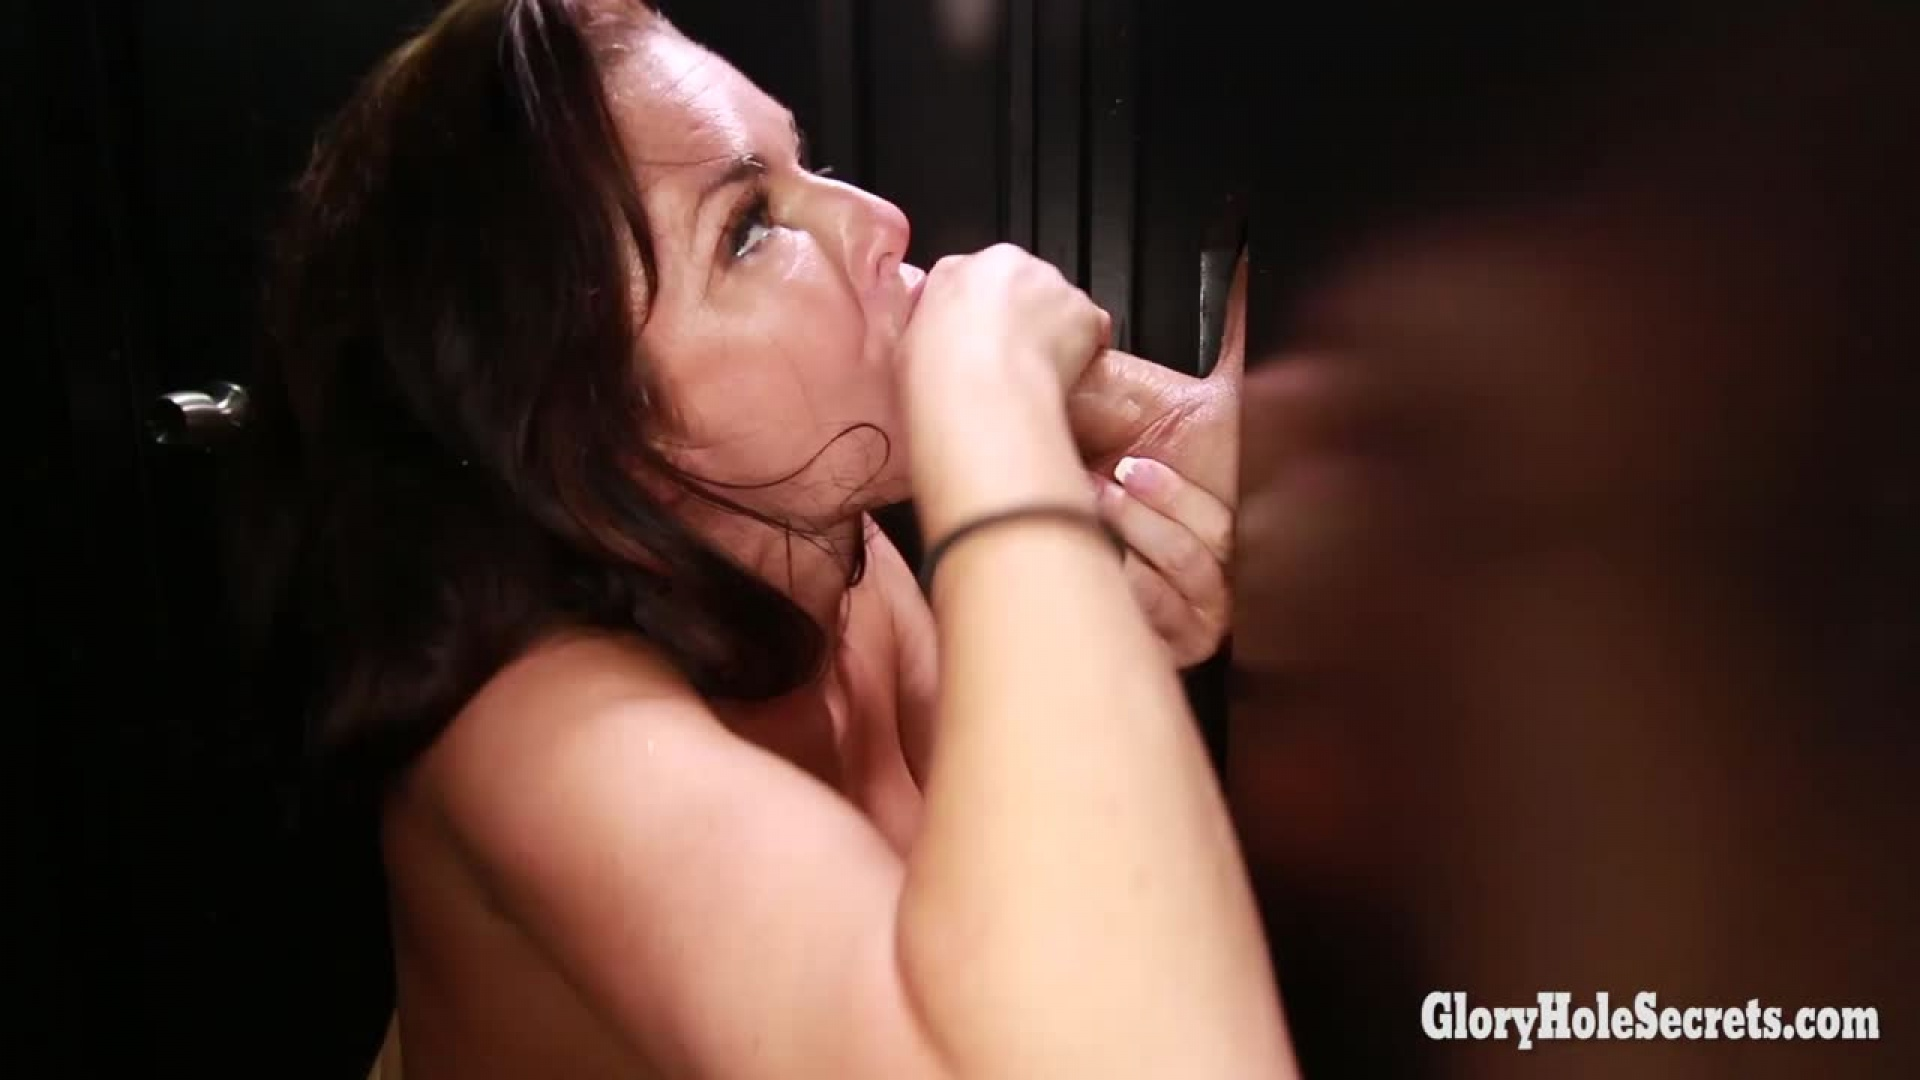 Glory hole streaming vid consider, that